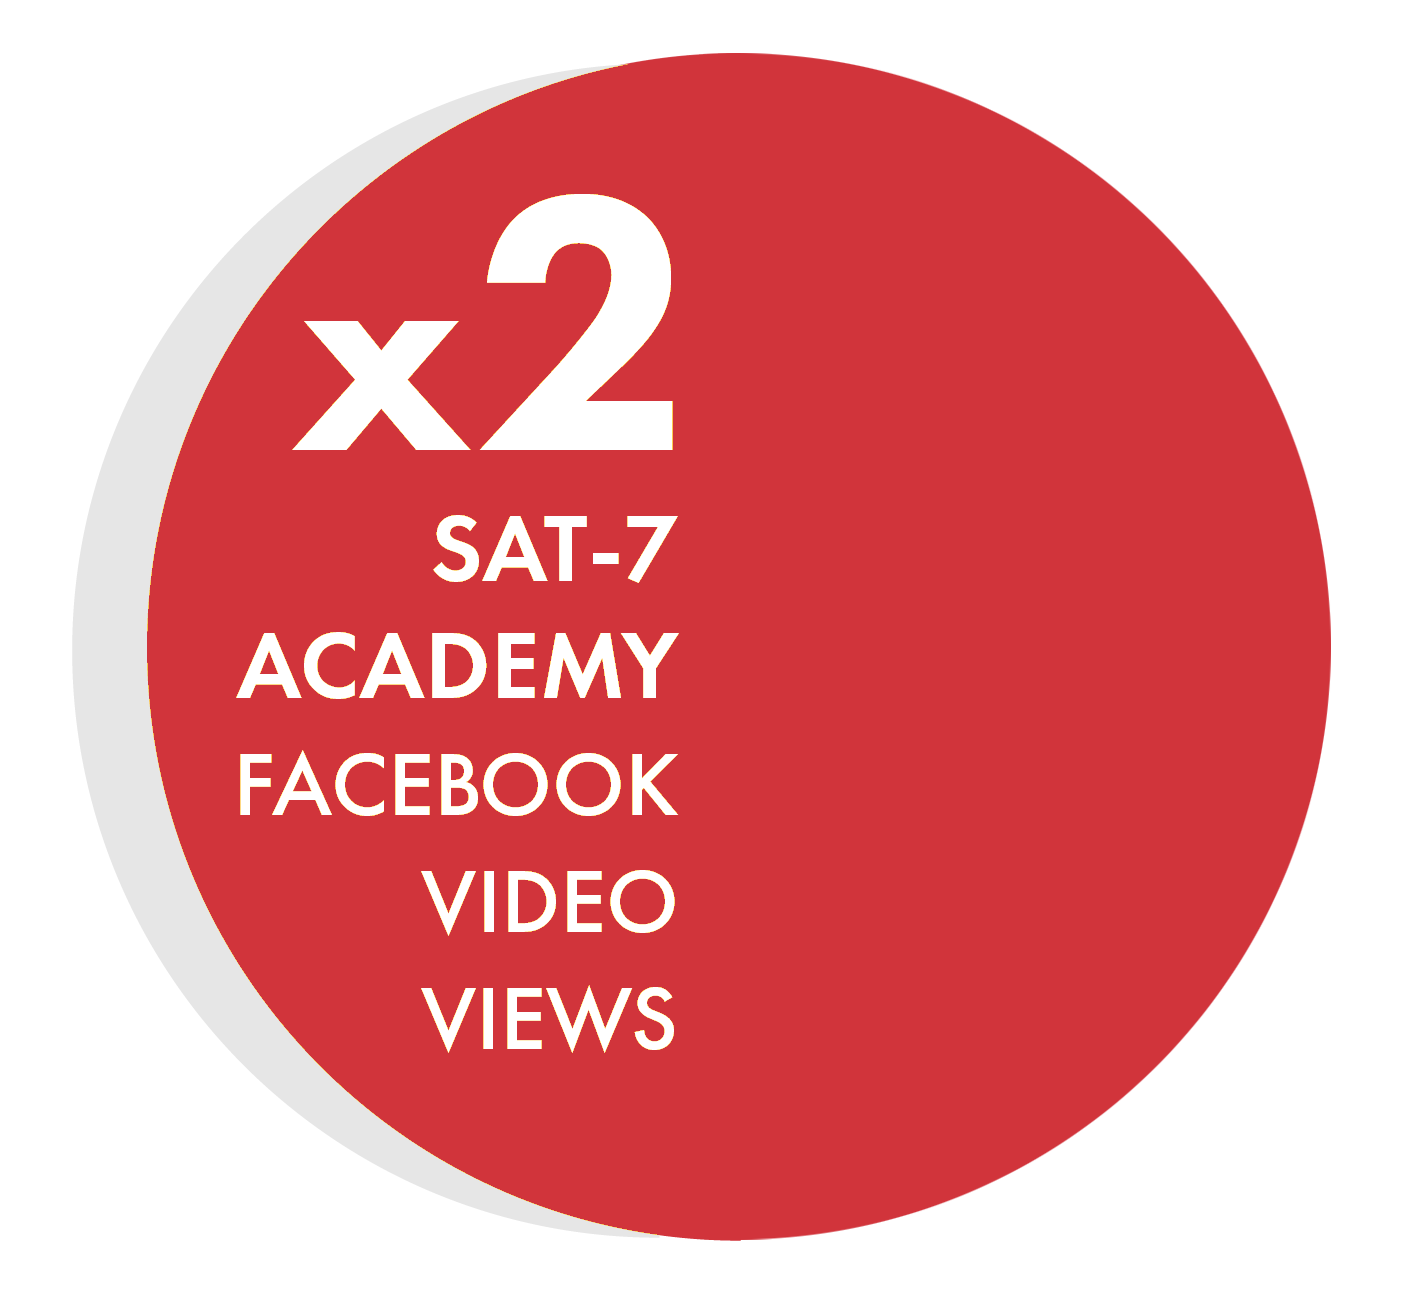 SAT-7 ACADEMY Double Video Views x2 Red CIRCLE